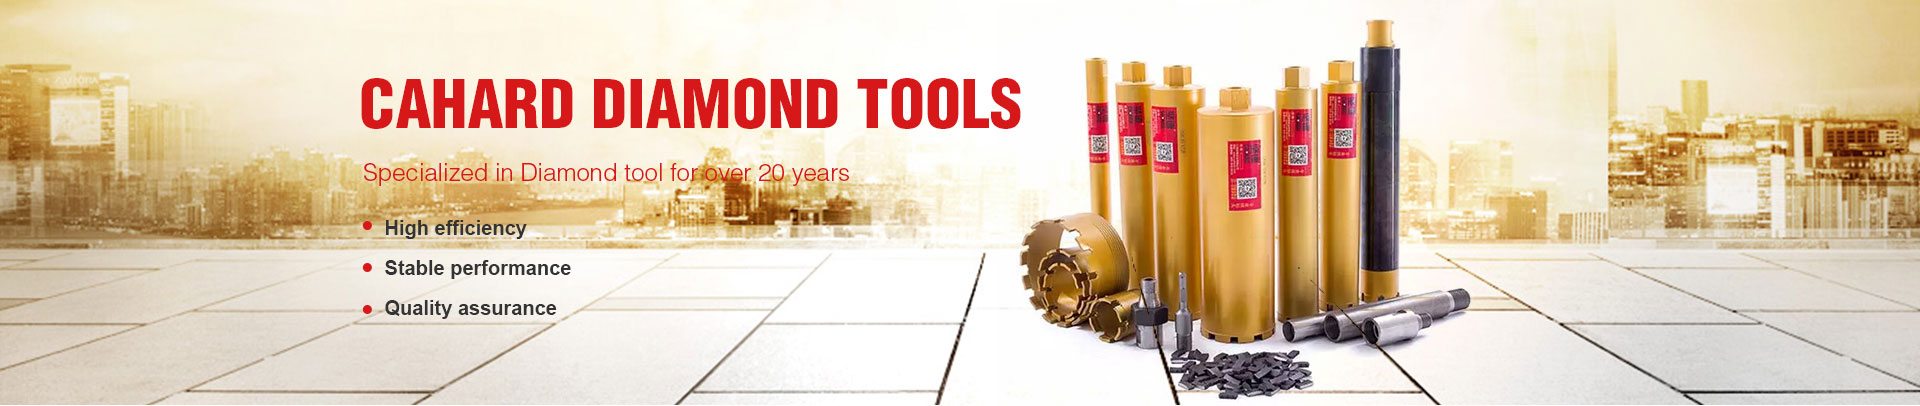 Cahard Diamond Tools